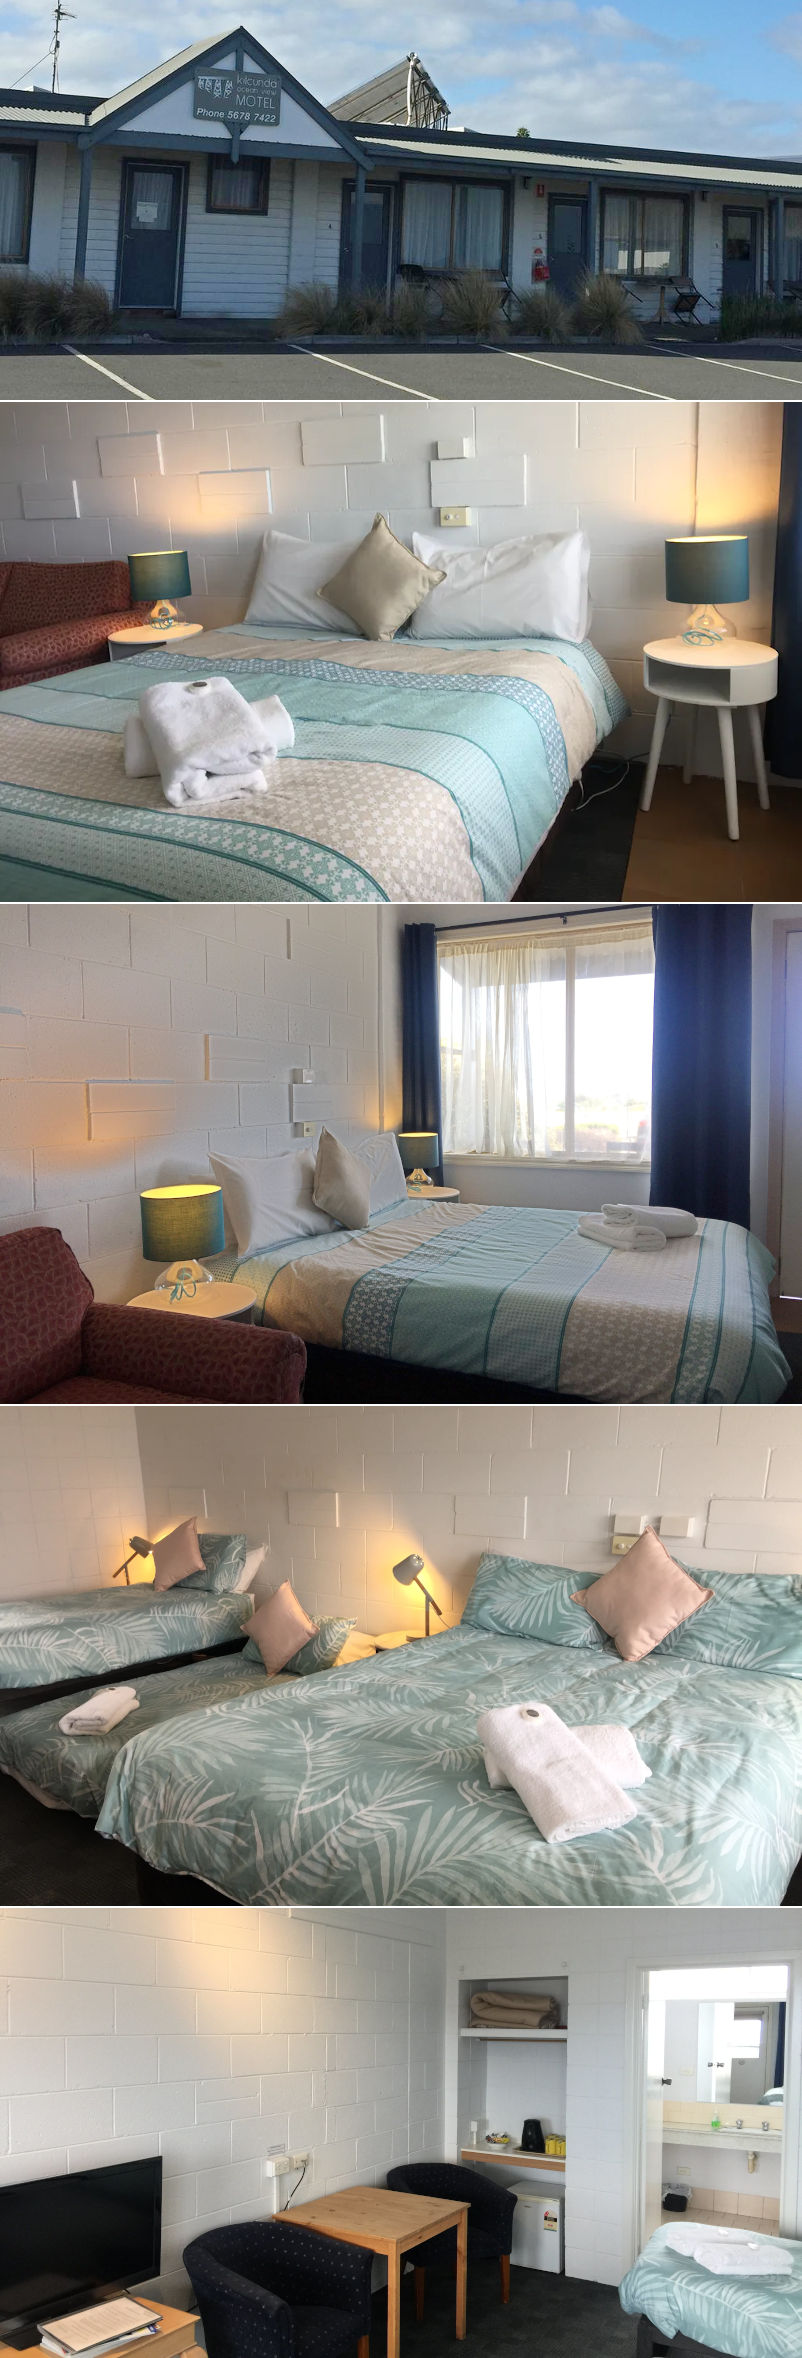 Kilcunda Ocean View Motel - Ocean view rooms